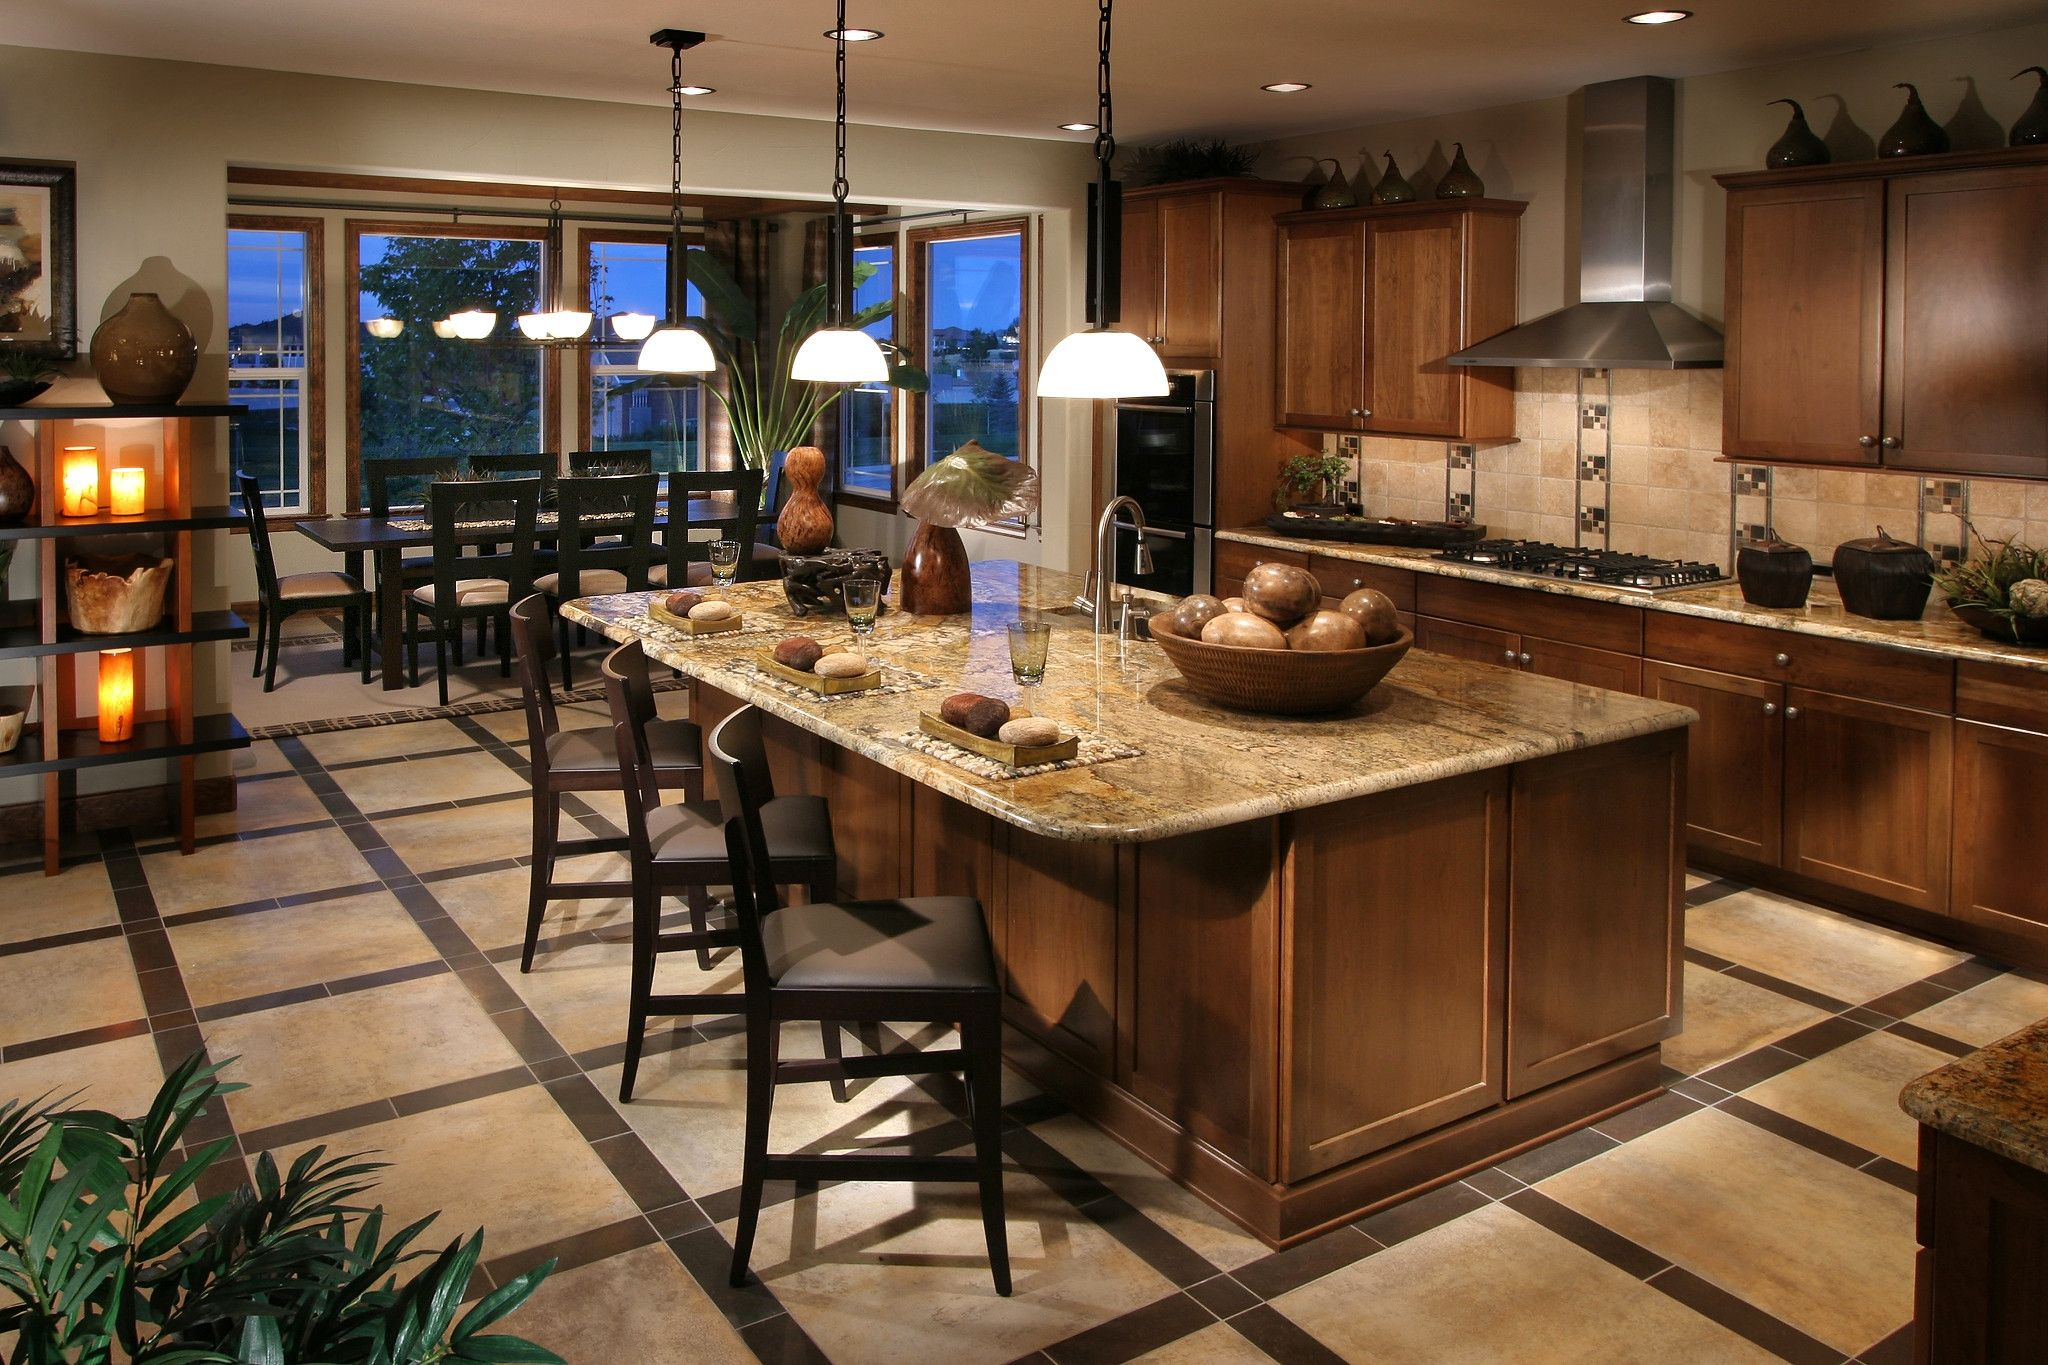 Kitchen-in-5012 Serenity Star-at-Water Dance at BackCountry-in-Highlands Ranch